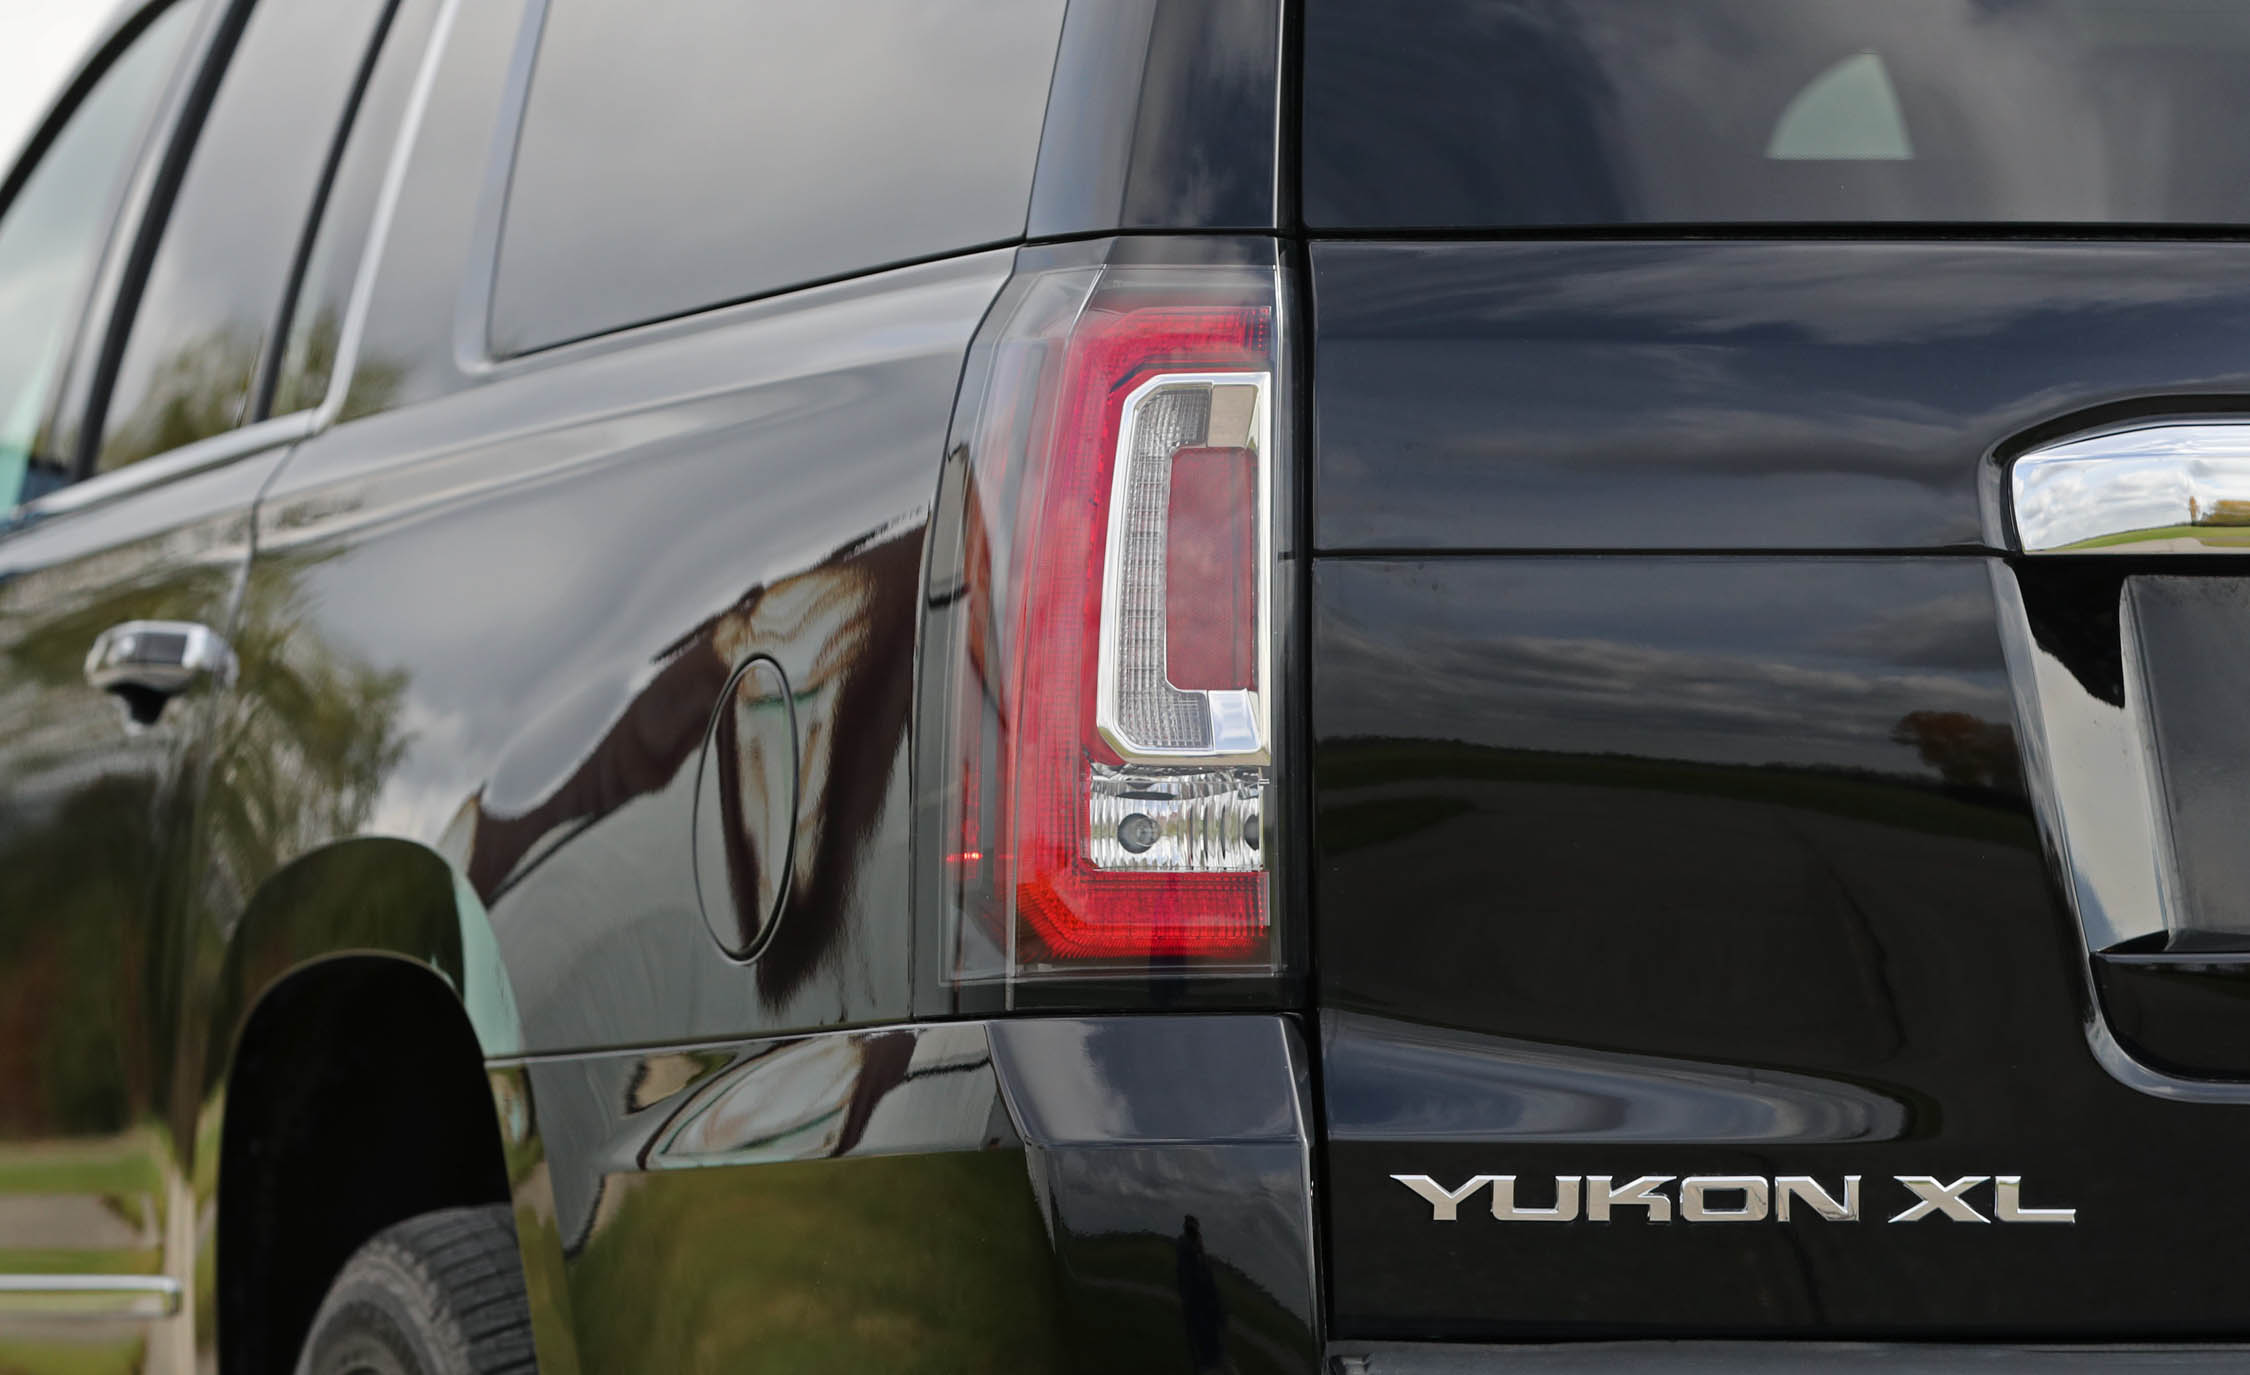 2017 Gmc Yukon Xl Denali Exterior View Taillight (Photo 13 of 26)